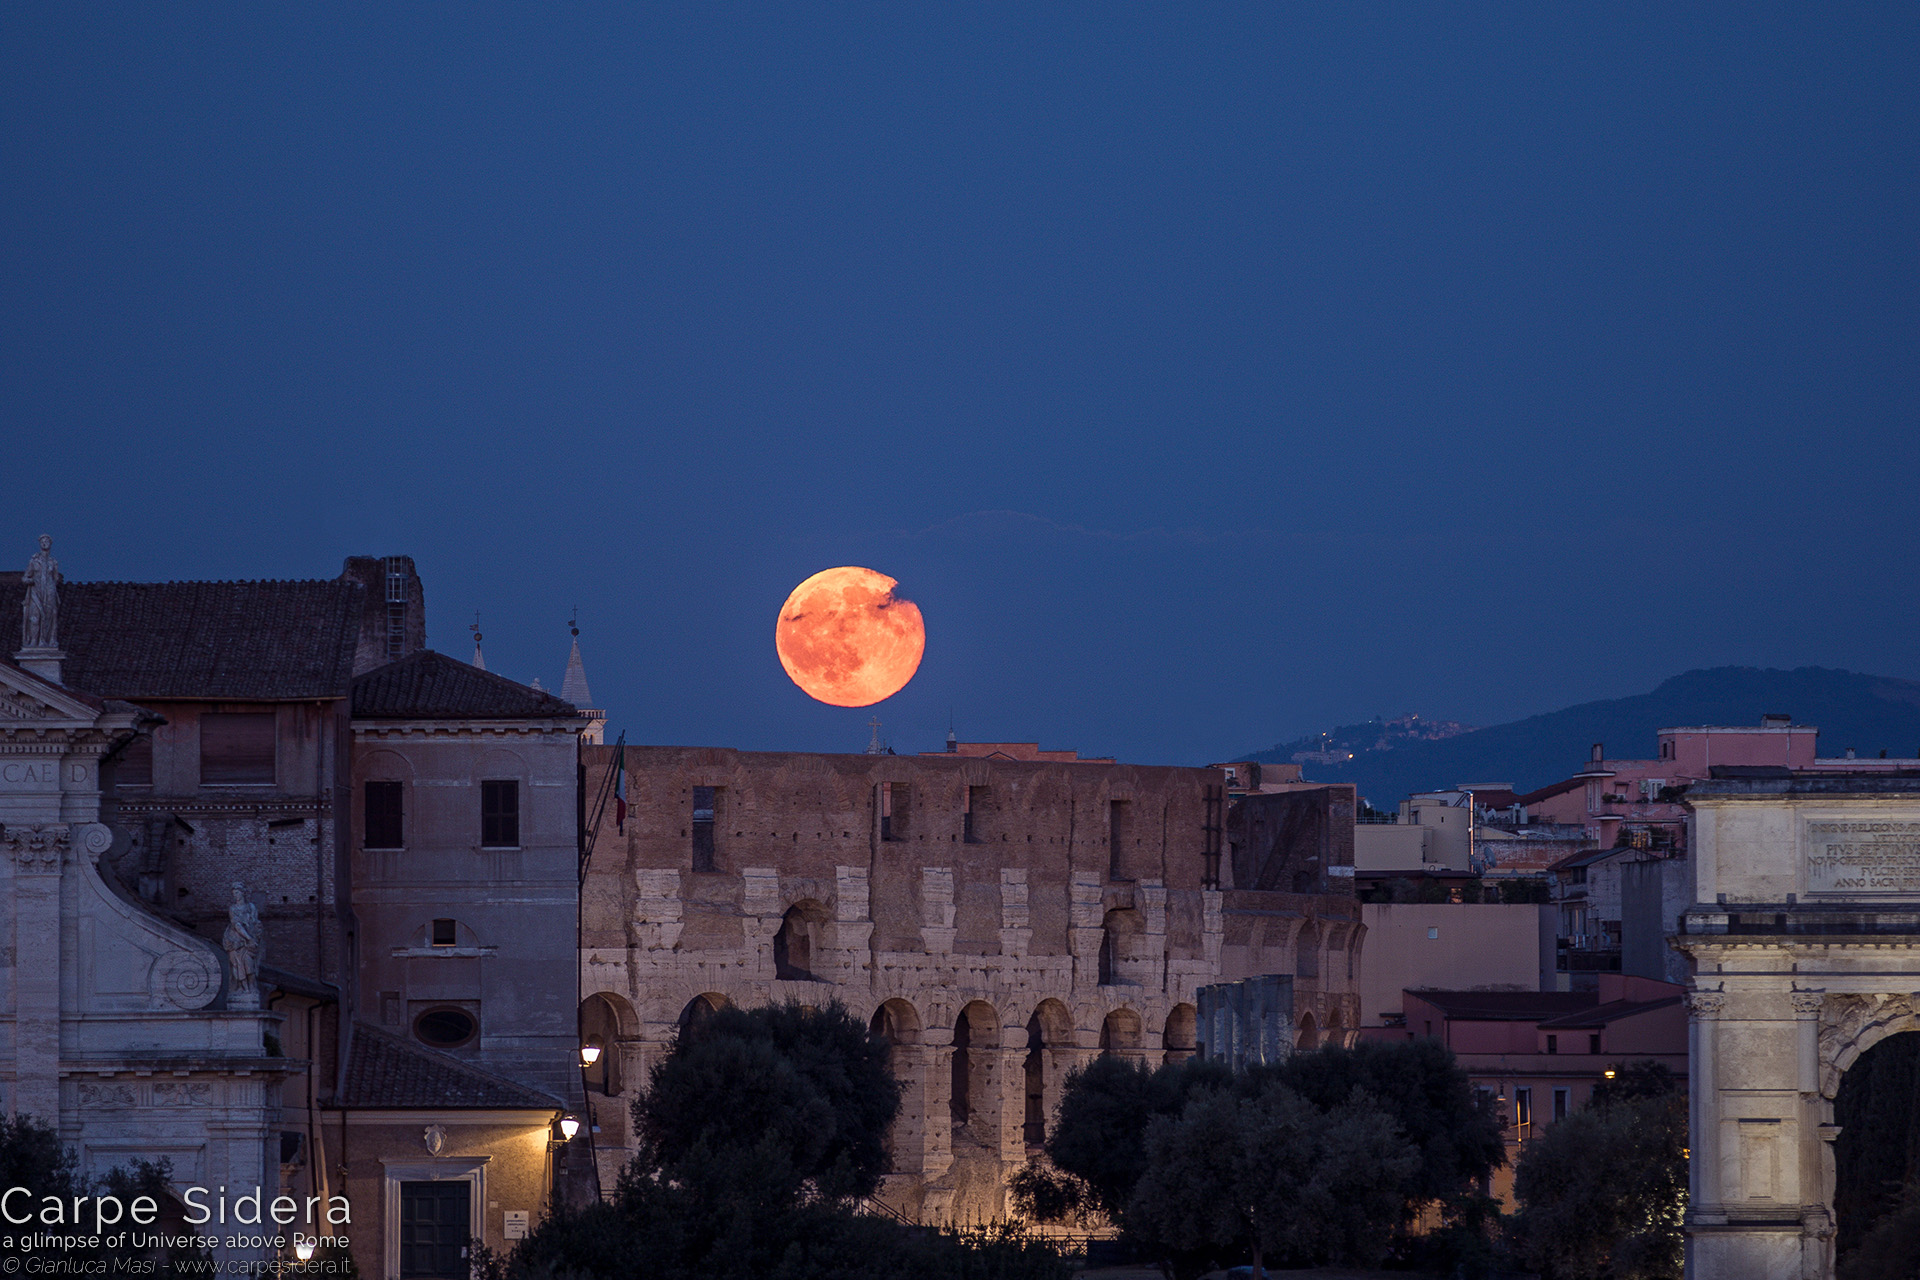 7. The 20 July 2016 full Moon and the Colosseum.